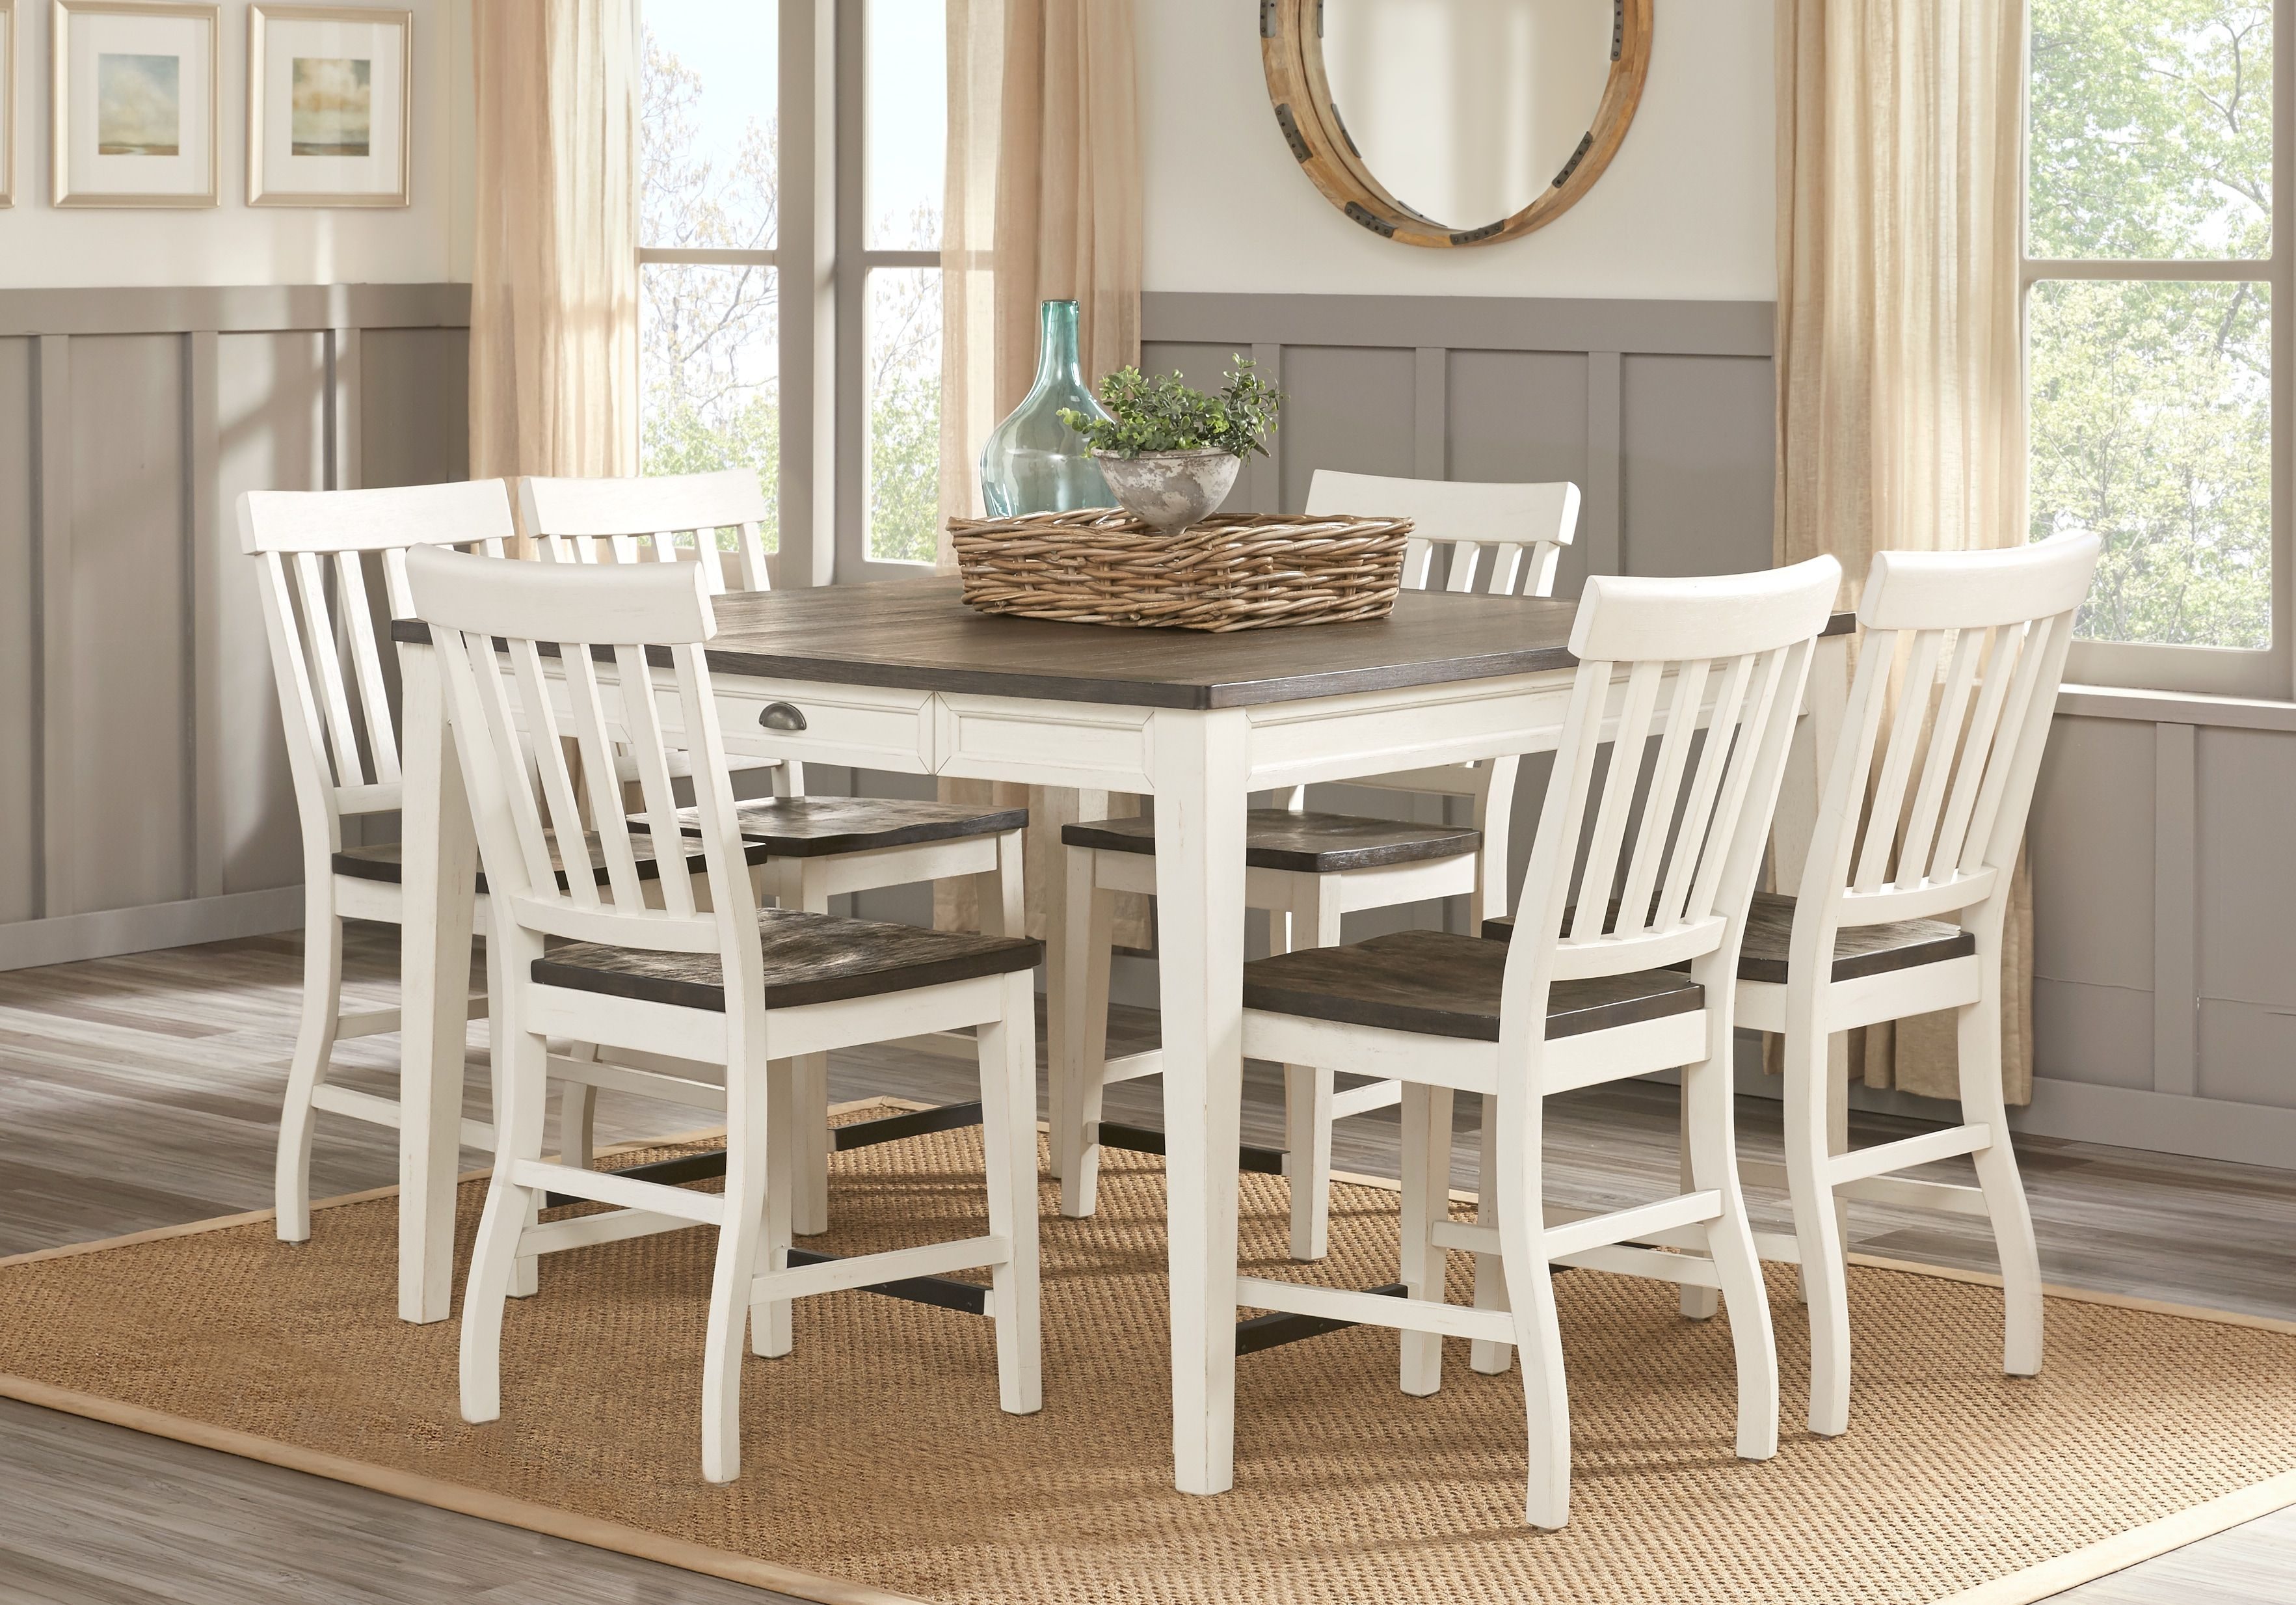 Keston White 5 Pc Square Counter Height Dining Room 699 99 5pc